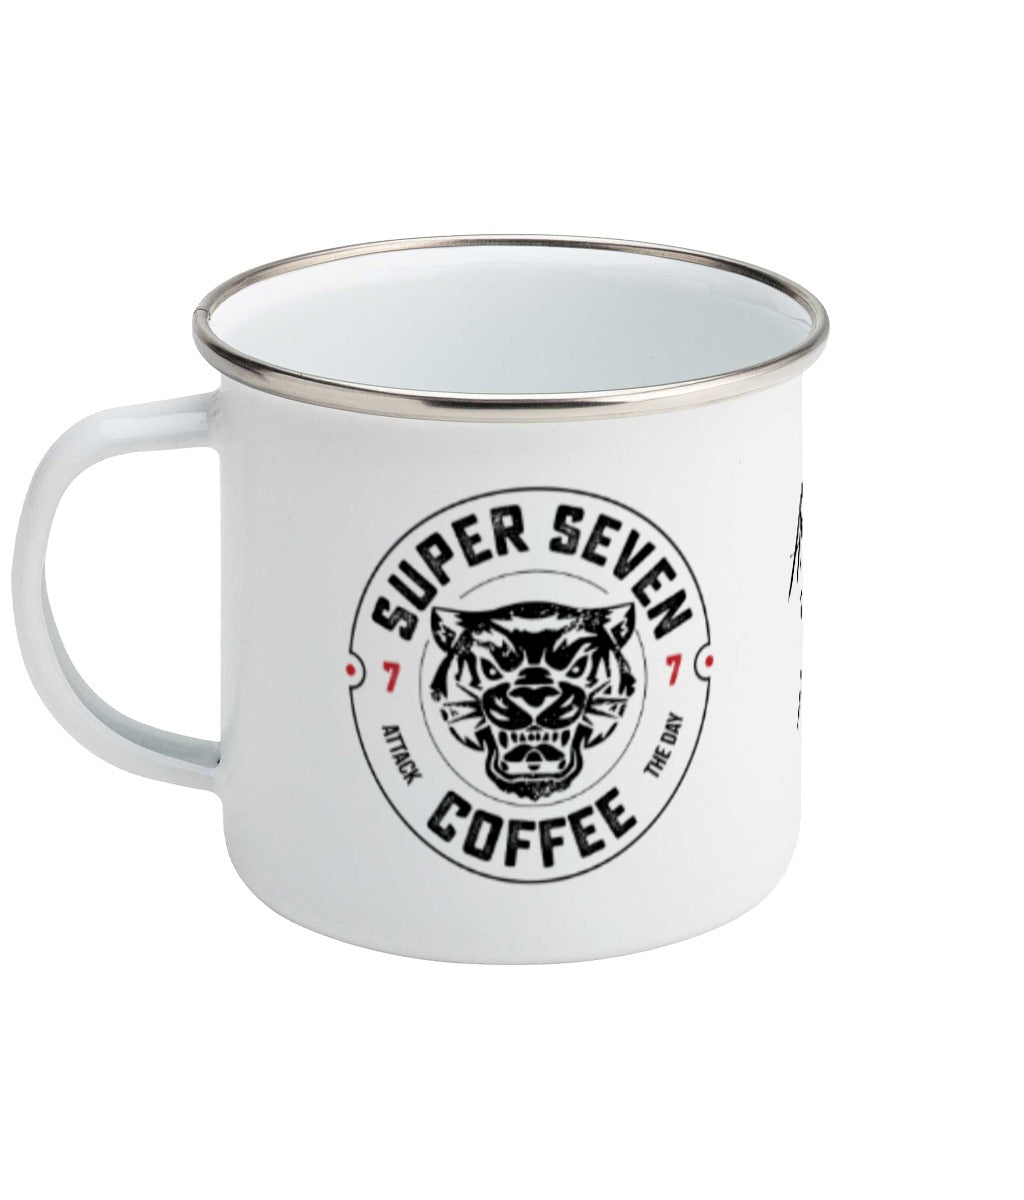 Enamel Mug S7C - (Personalised) 300ml